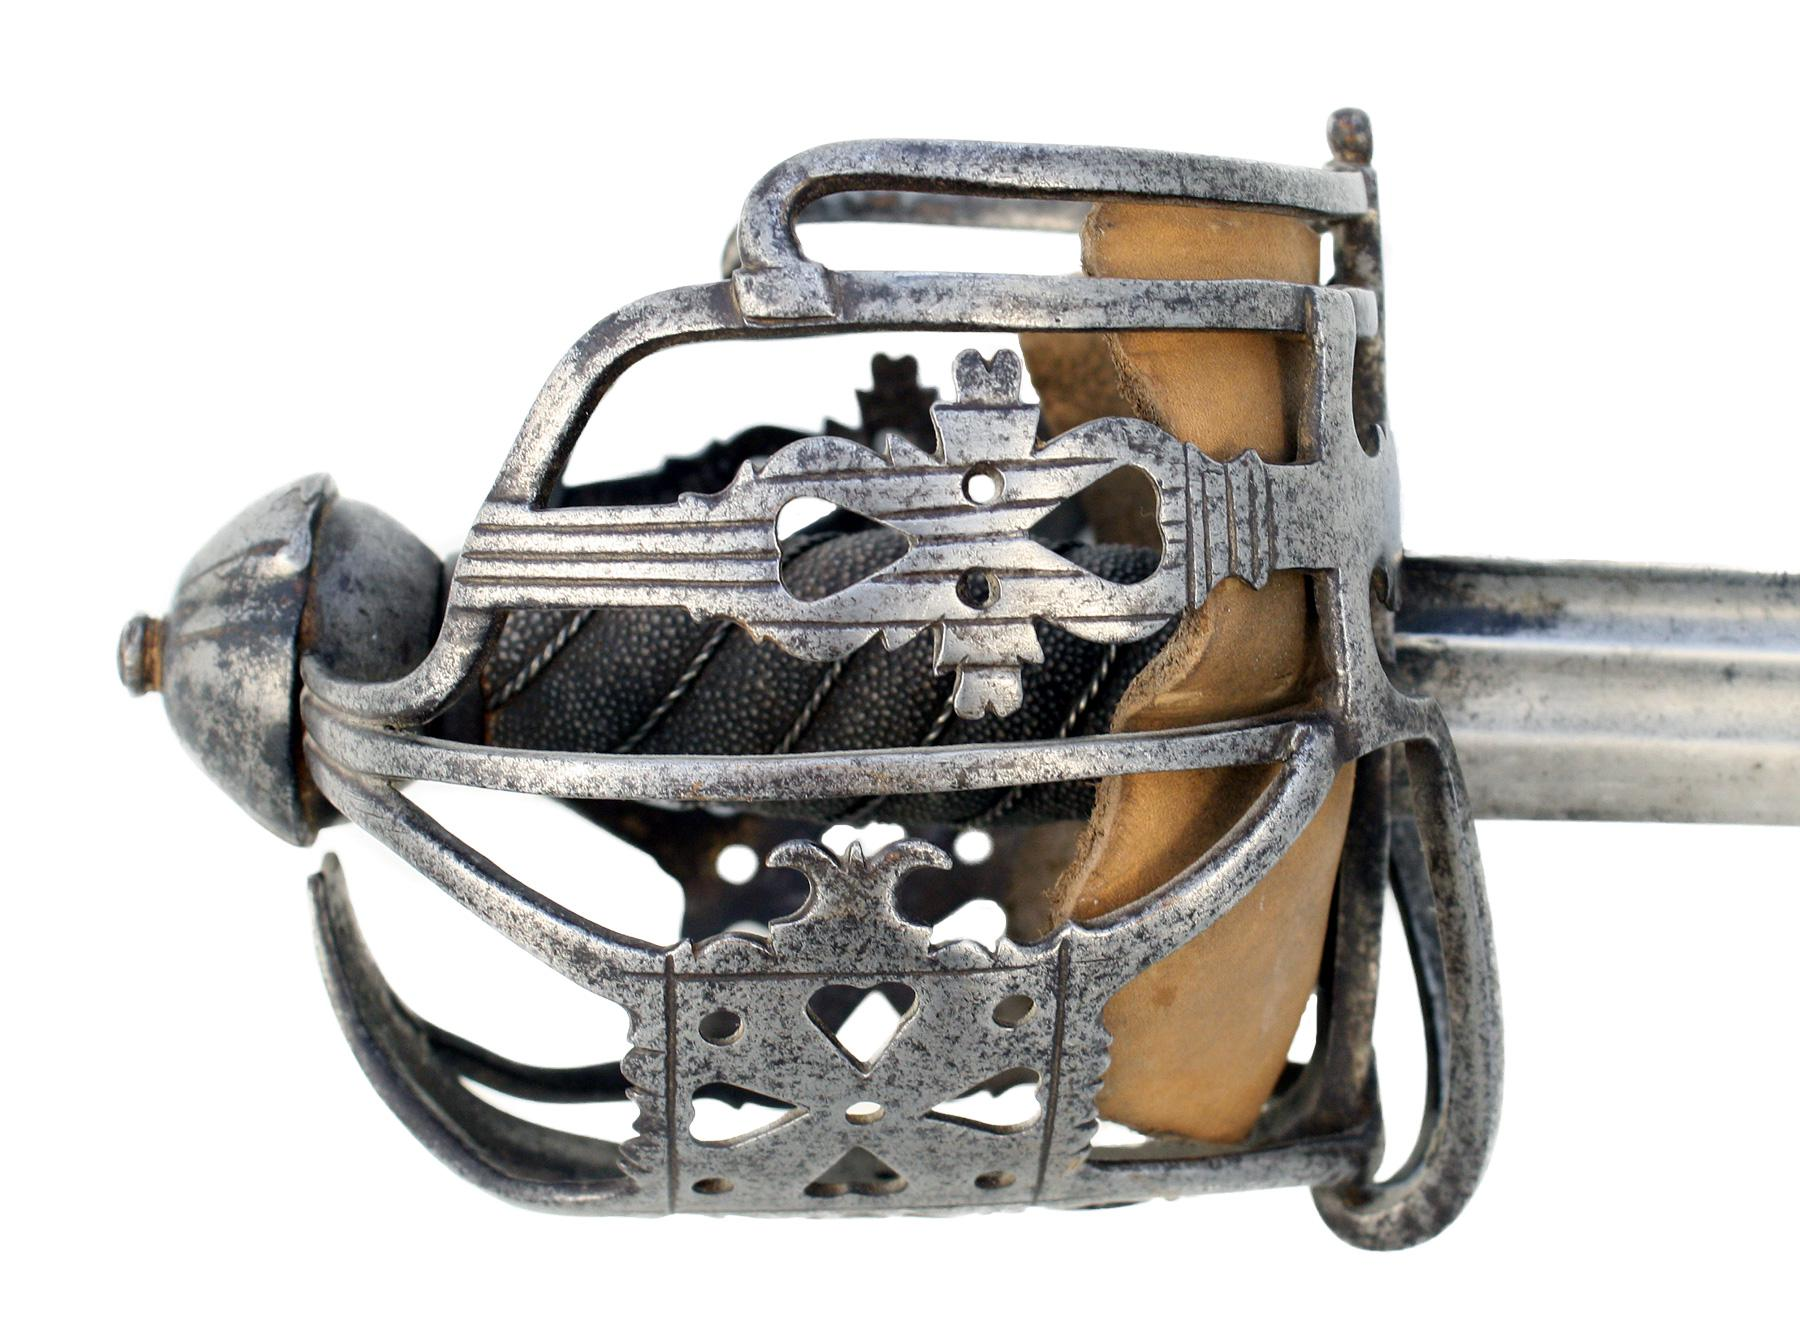 an early basket hilted backsword early 18th century